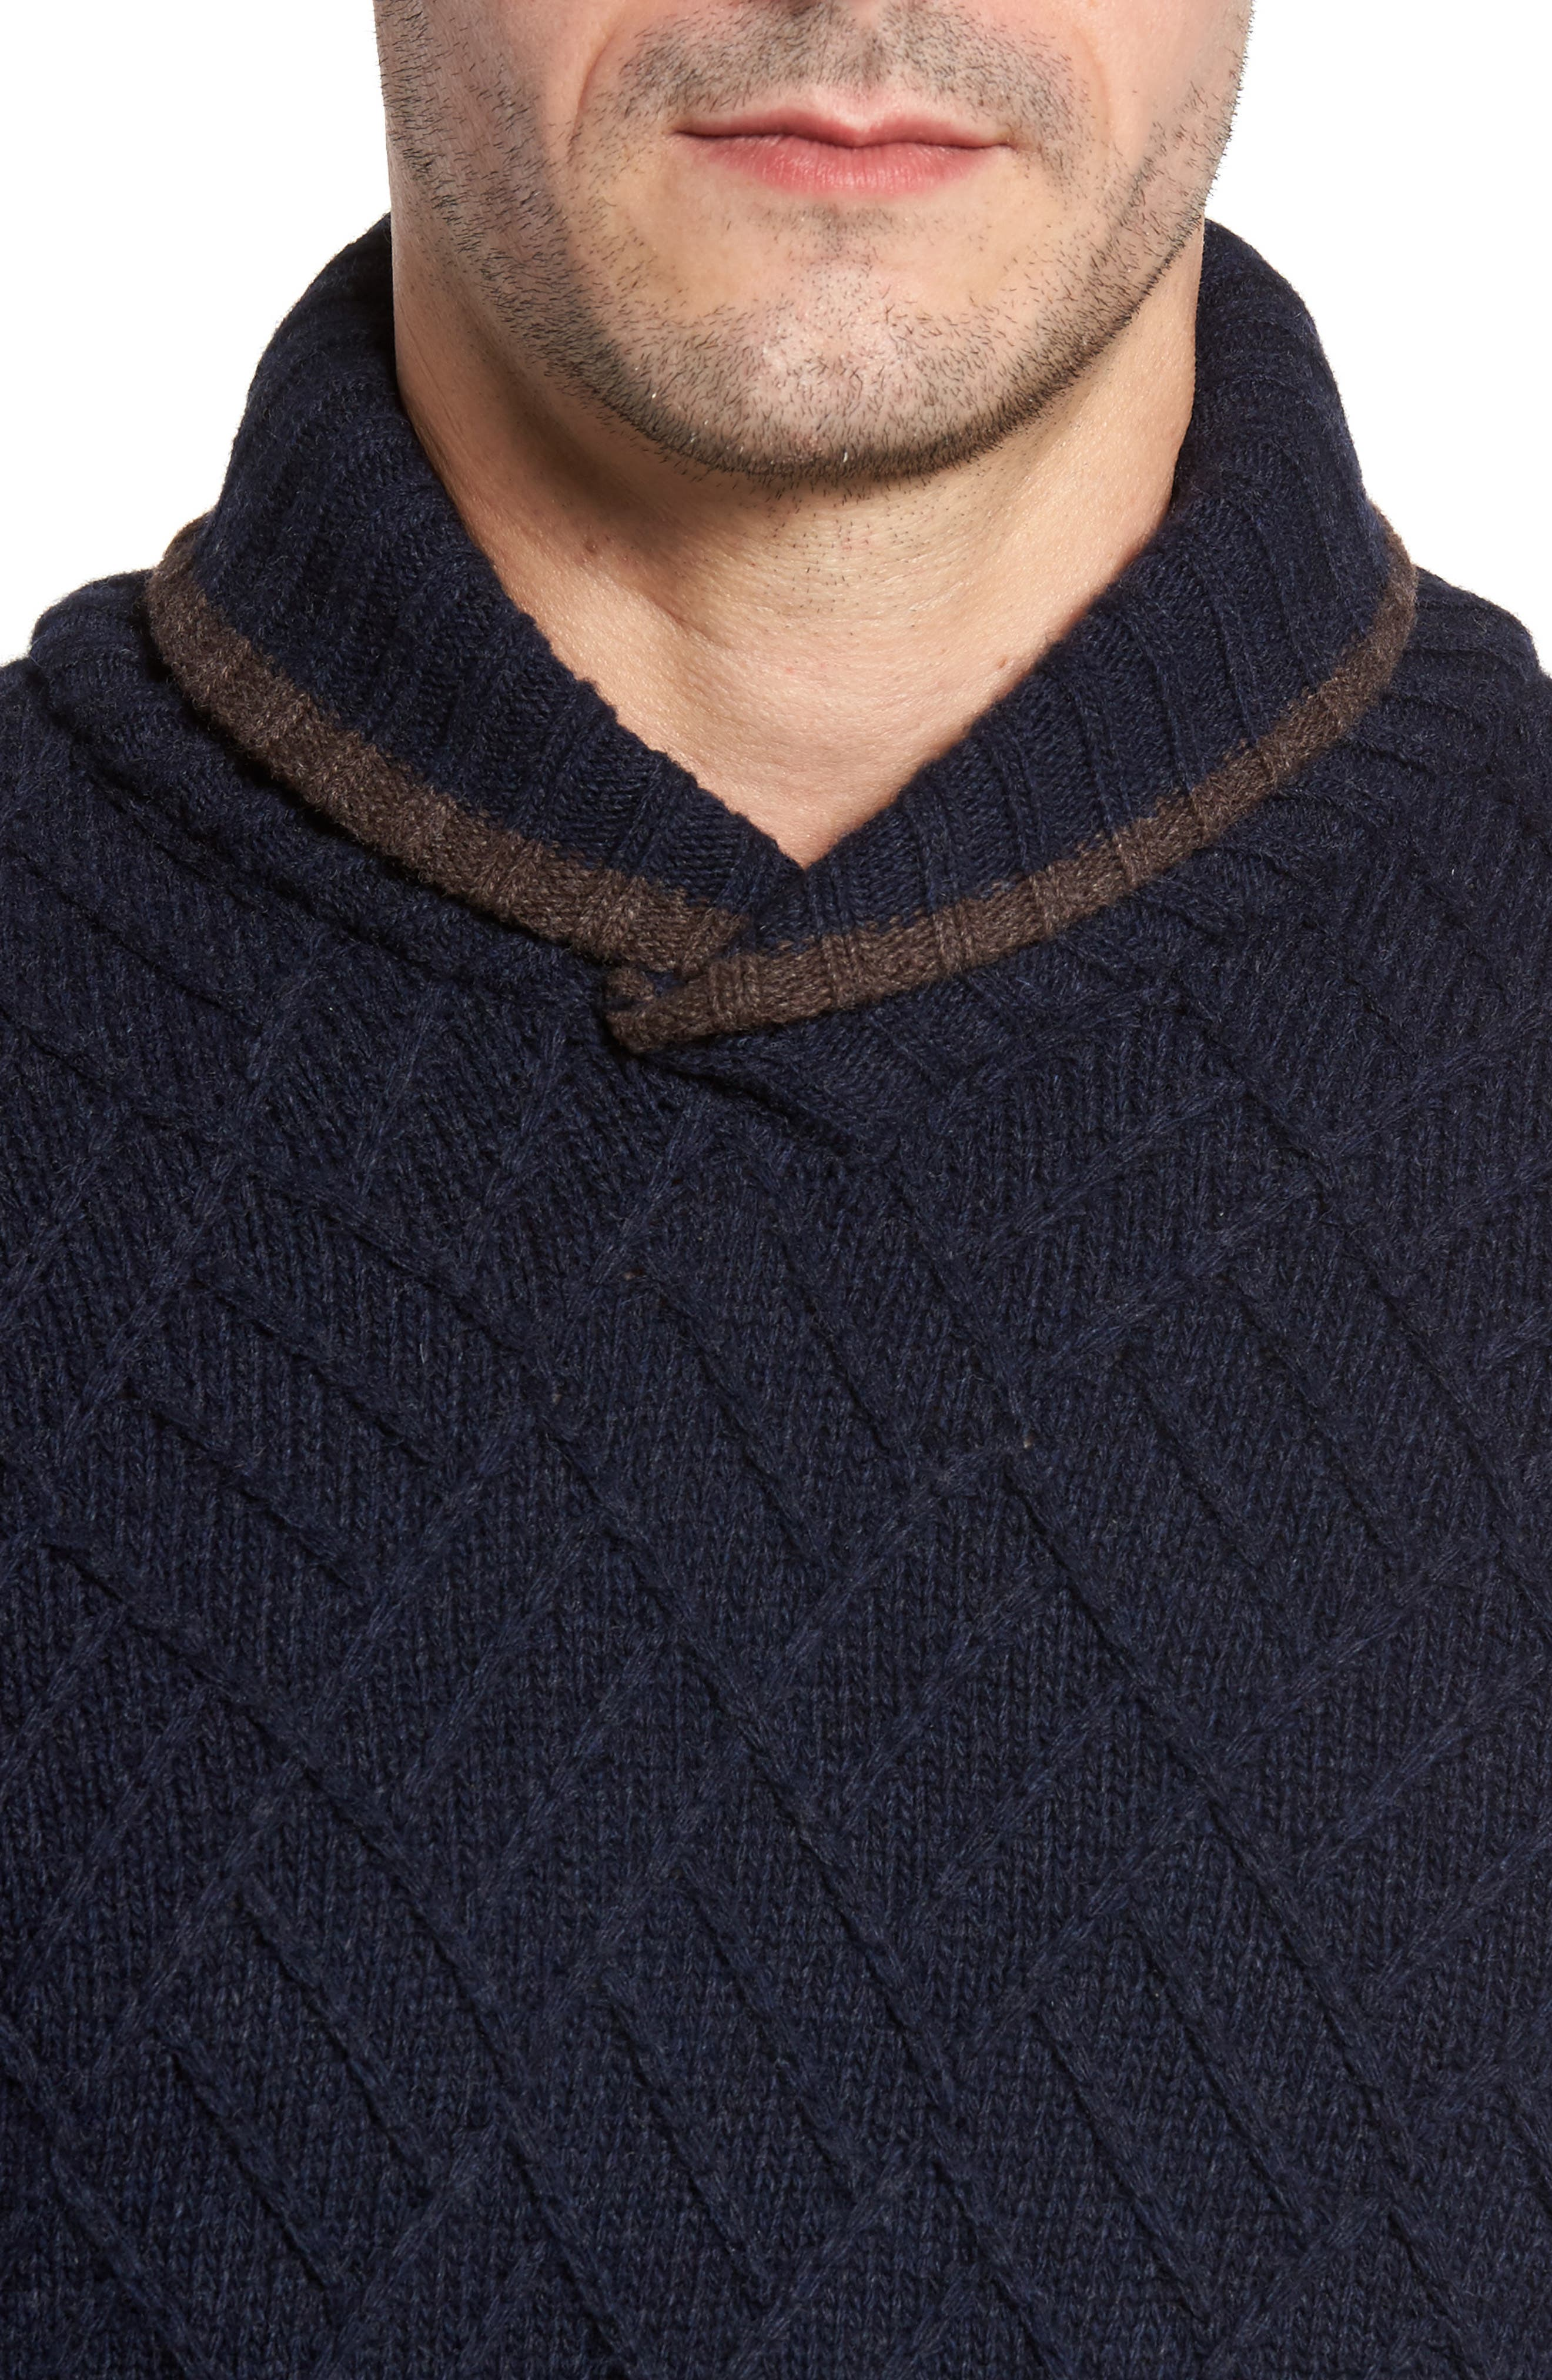 Textured Wool Sweater,                             Alternate thumbnail 4, color,